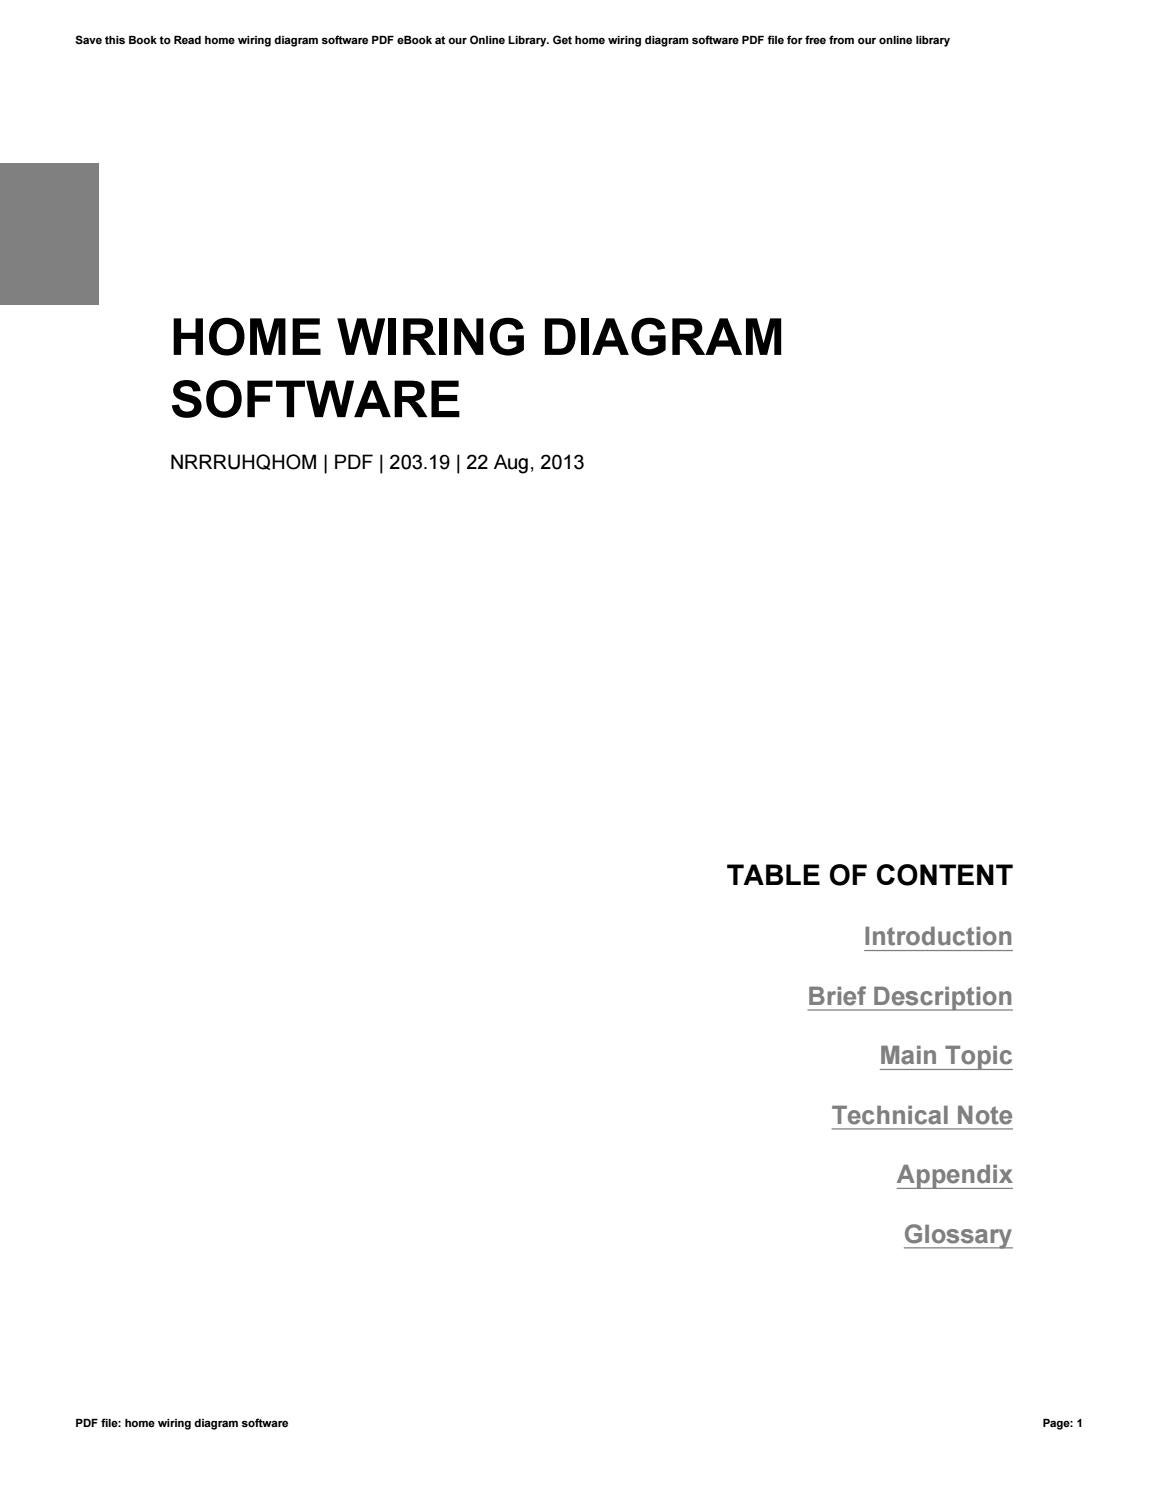 Home Wiring Diagram Software By Carolinepurcell4331 Issuu